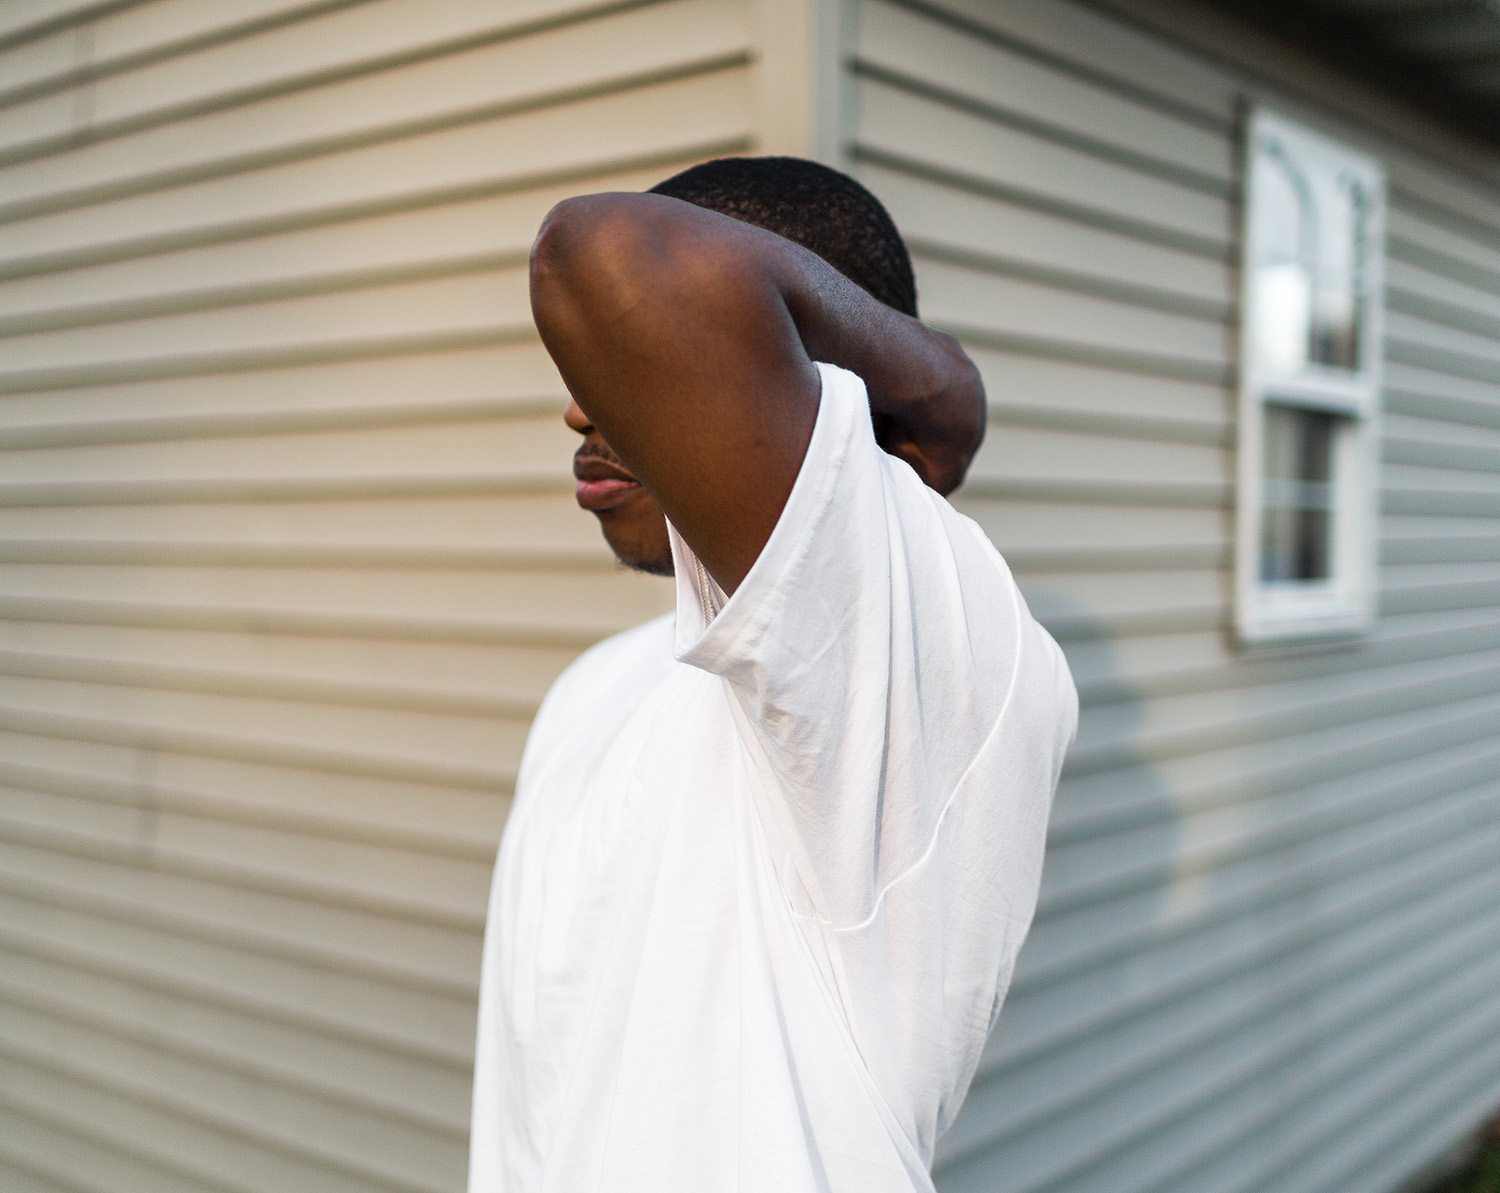 Zora J Murff's photography will have you questioning your beliefs